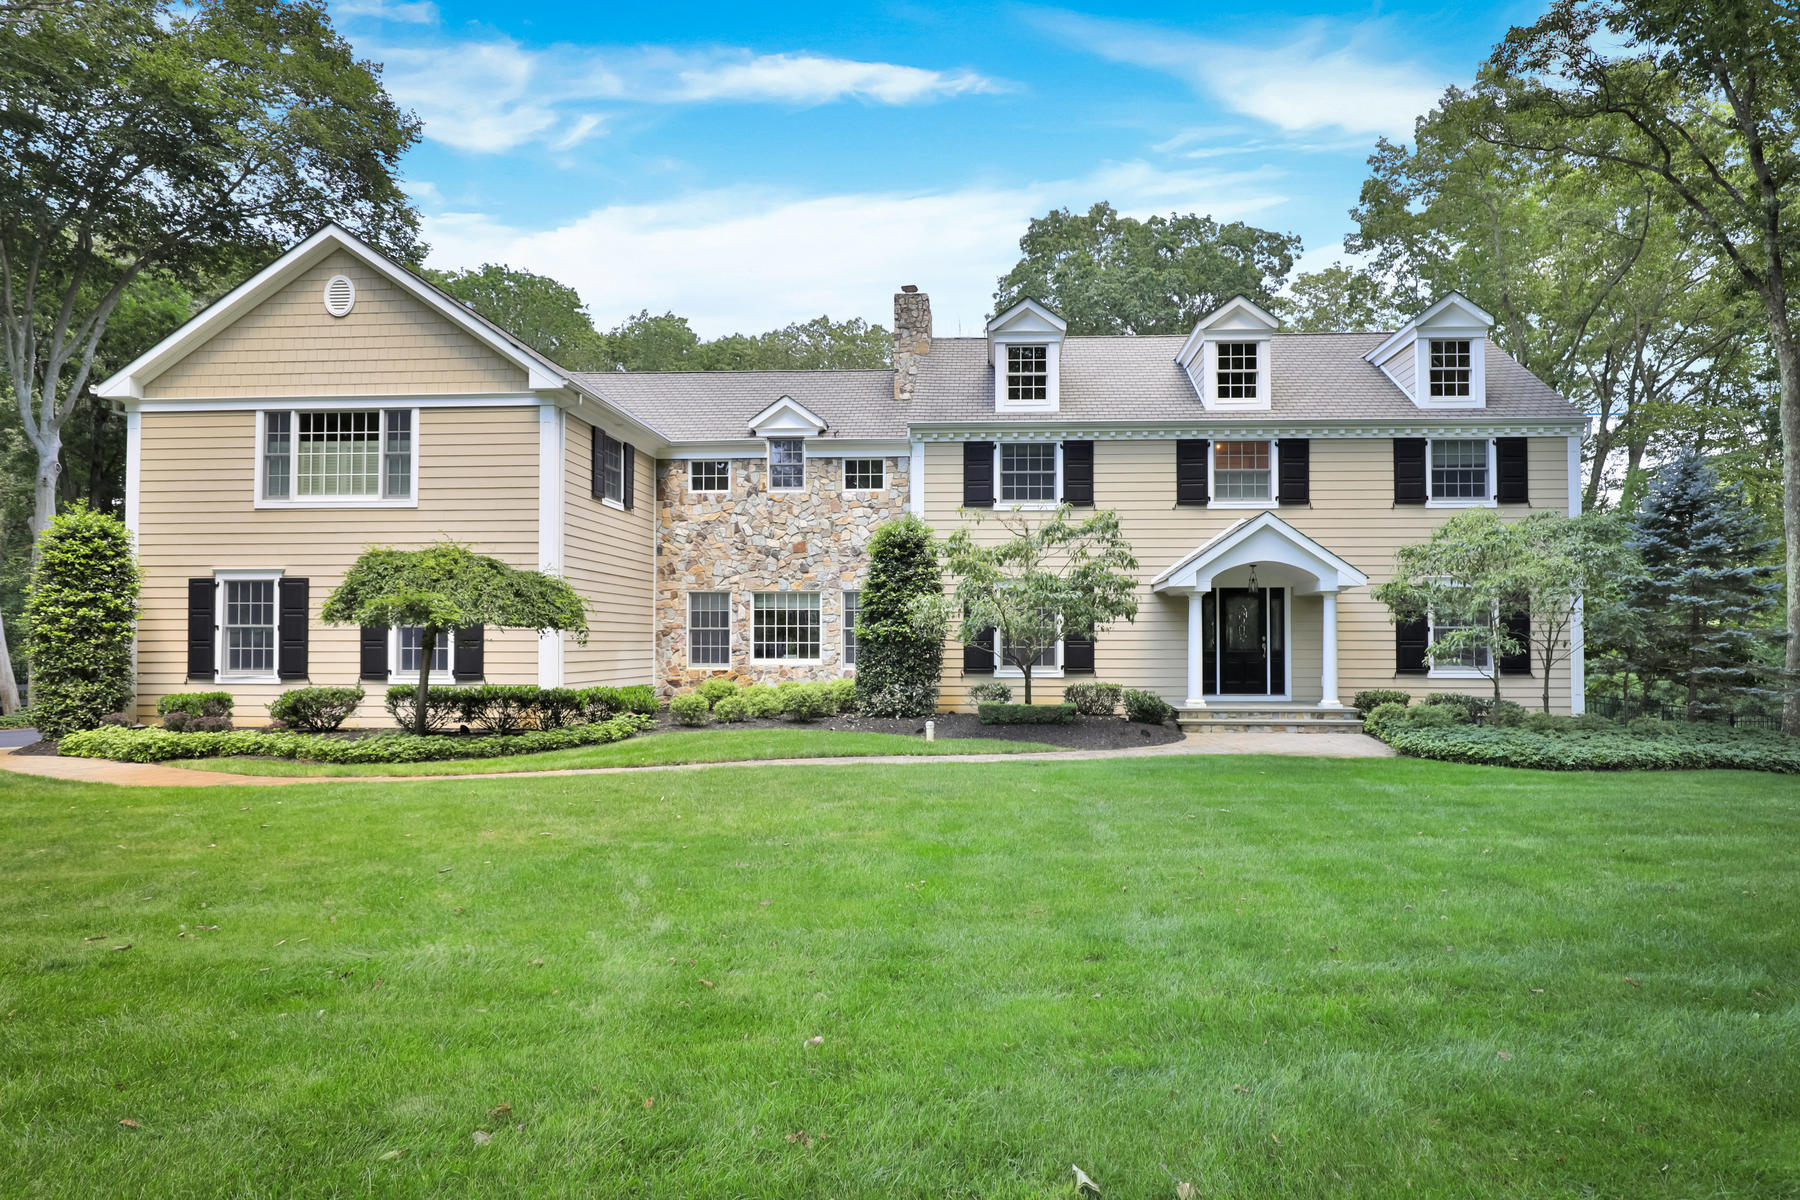 Single Family Homes for Sale at 8 Christopher Drive Colts Neck, New Jersey 07722 United States